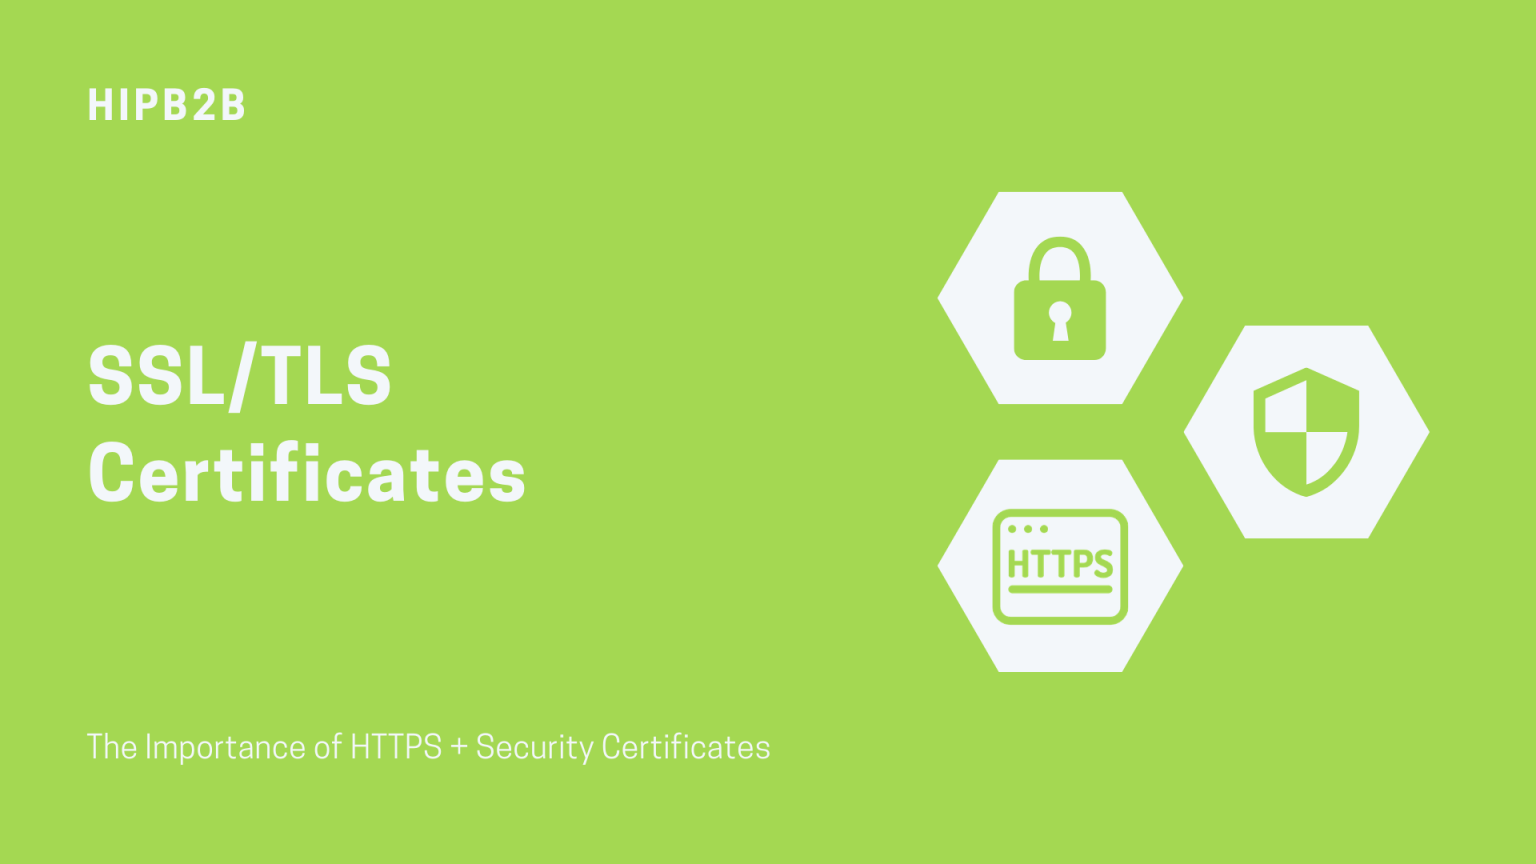 what is https and why is it very important